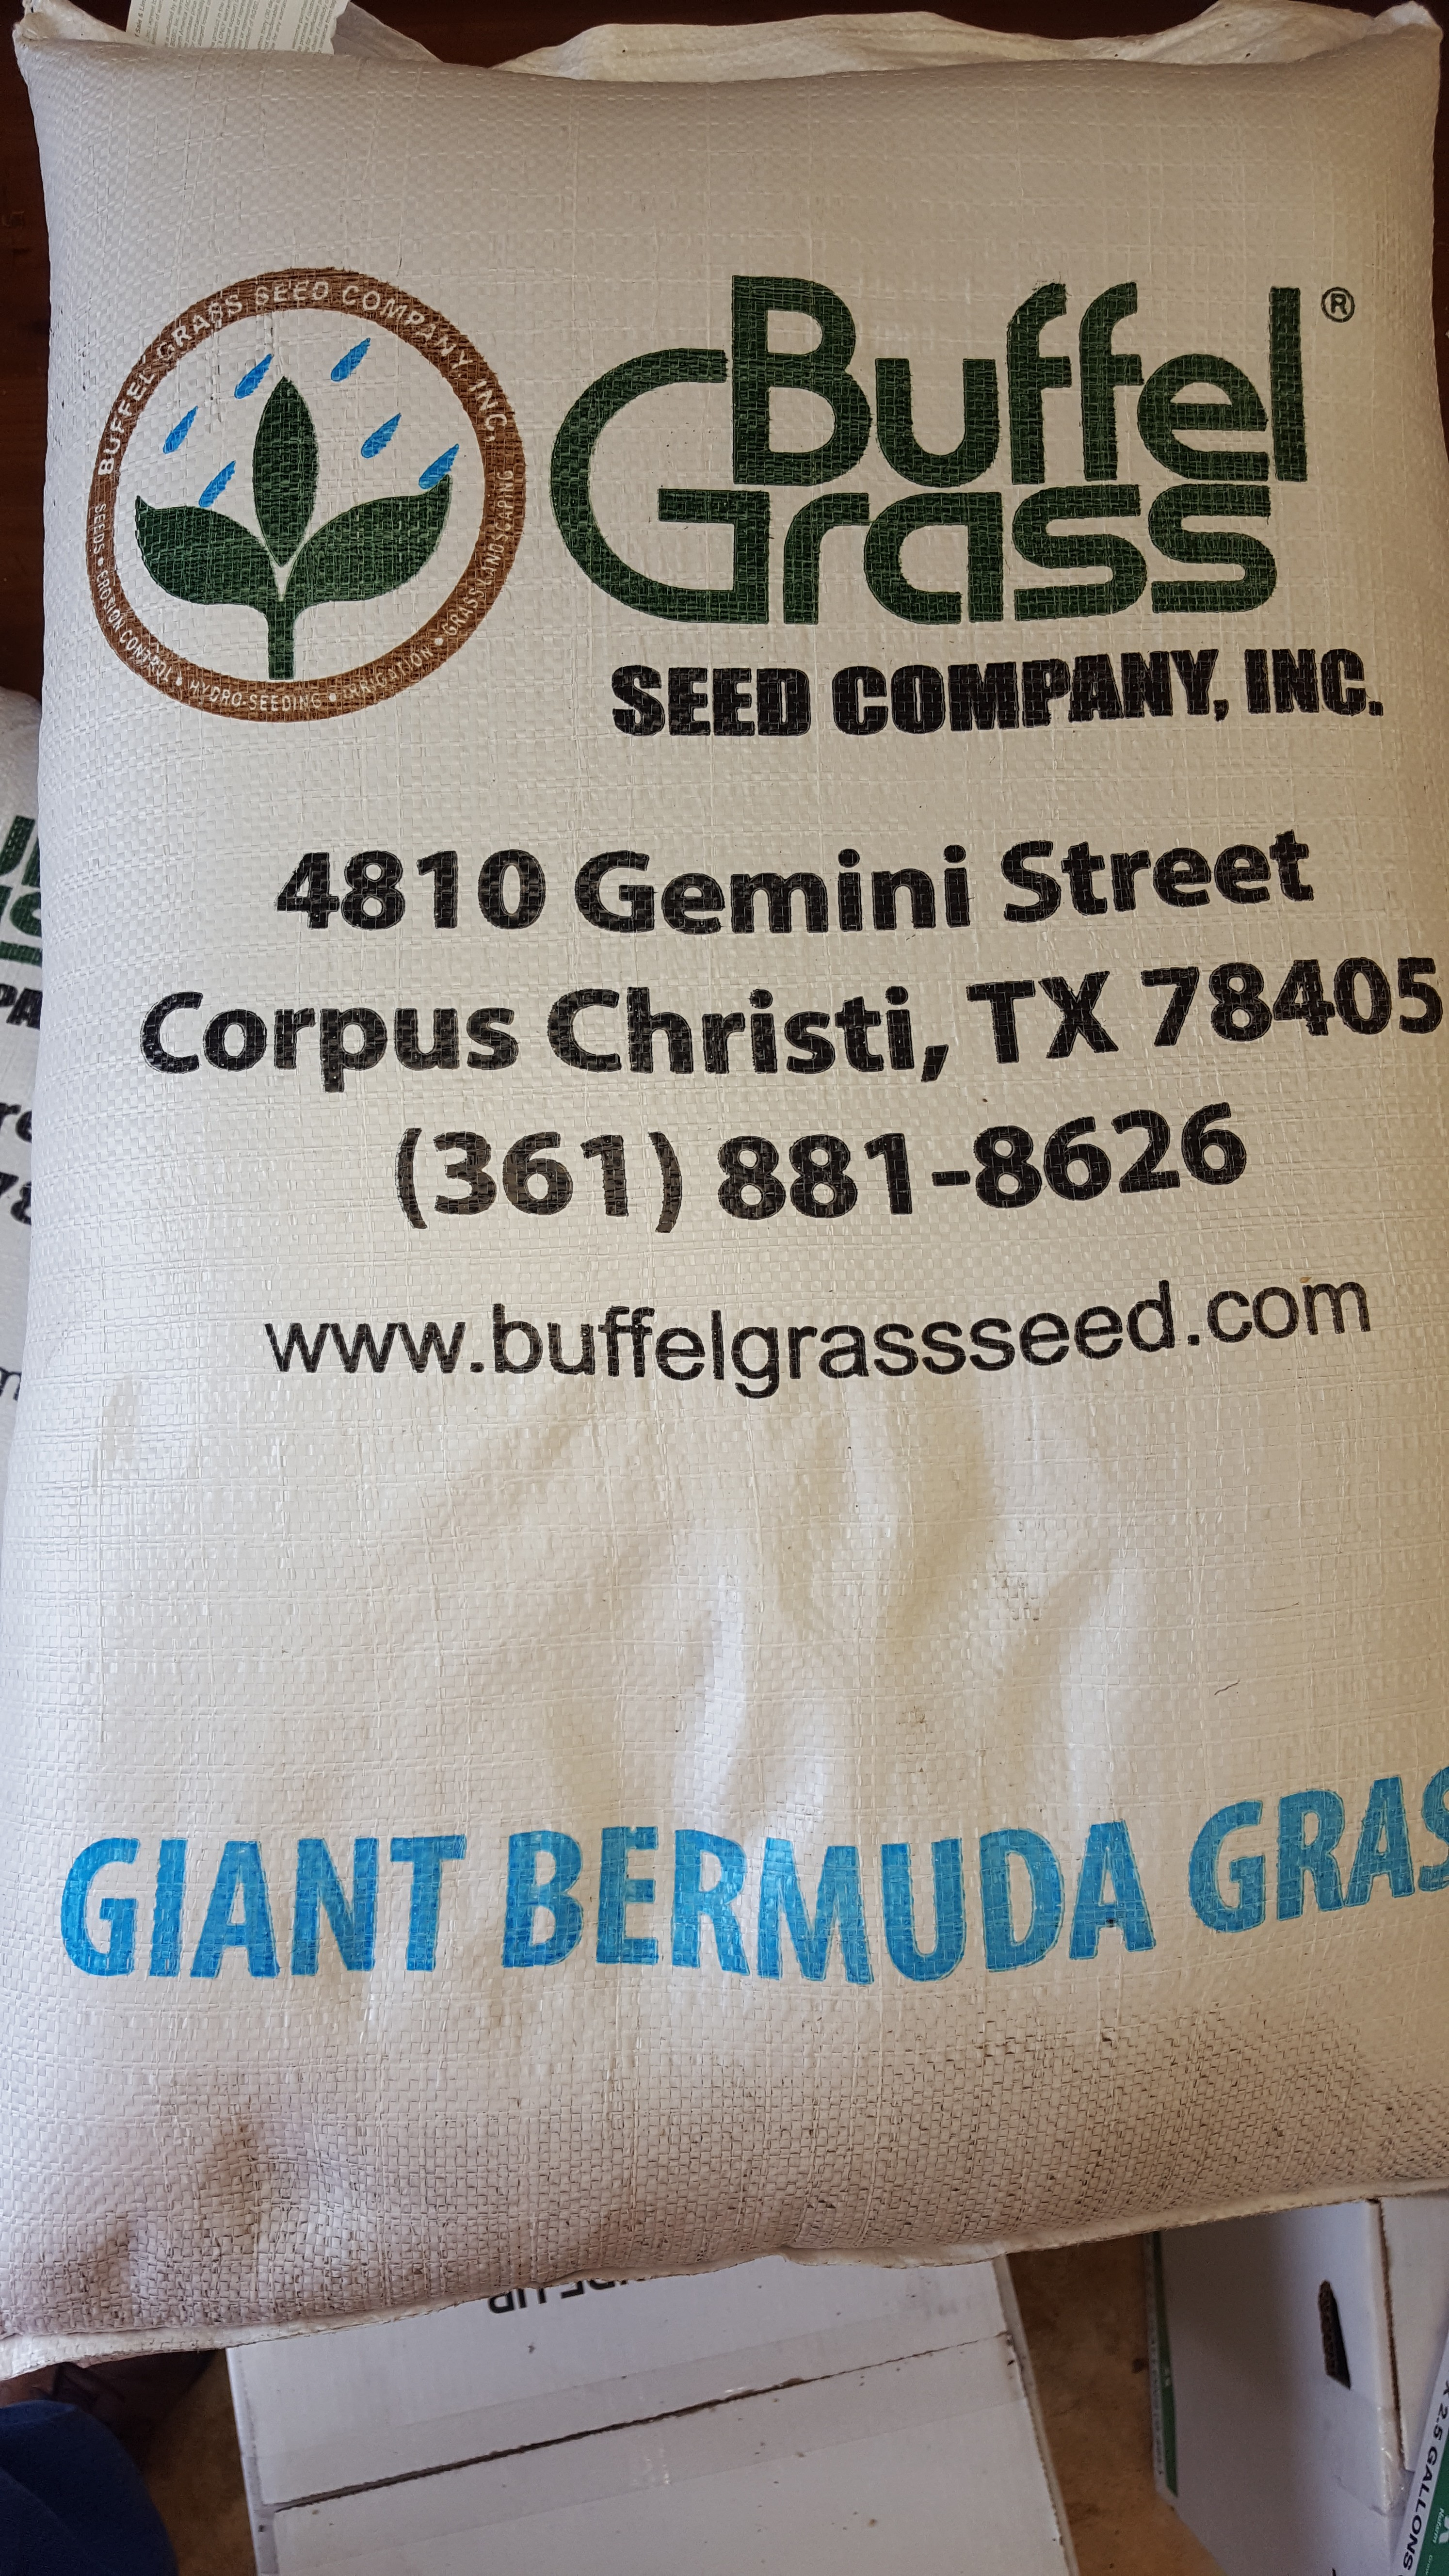 Giant Bermuda Bag